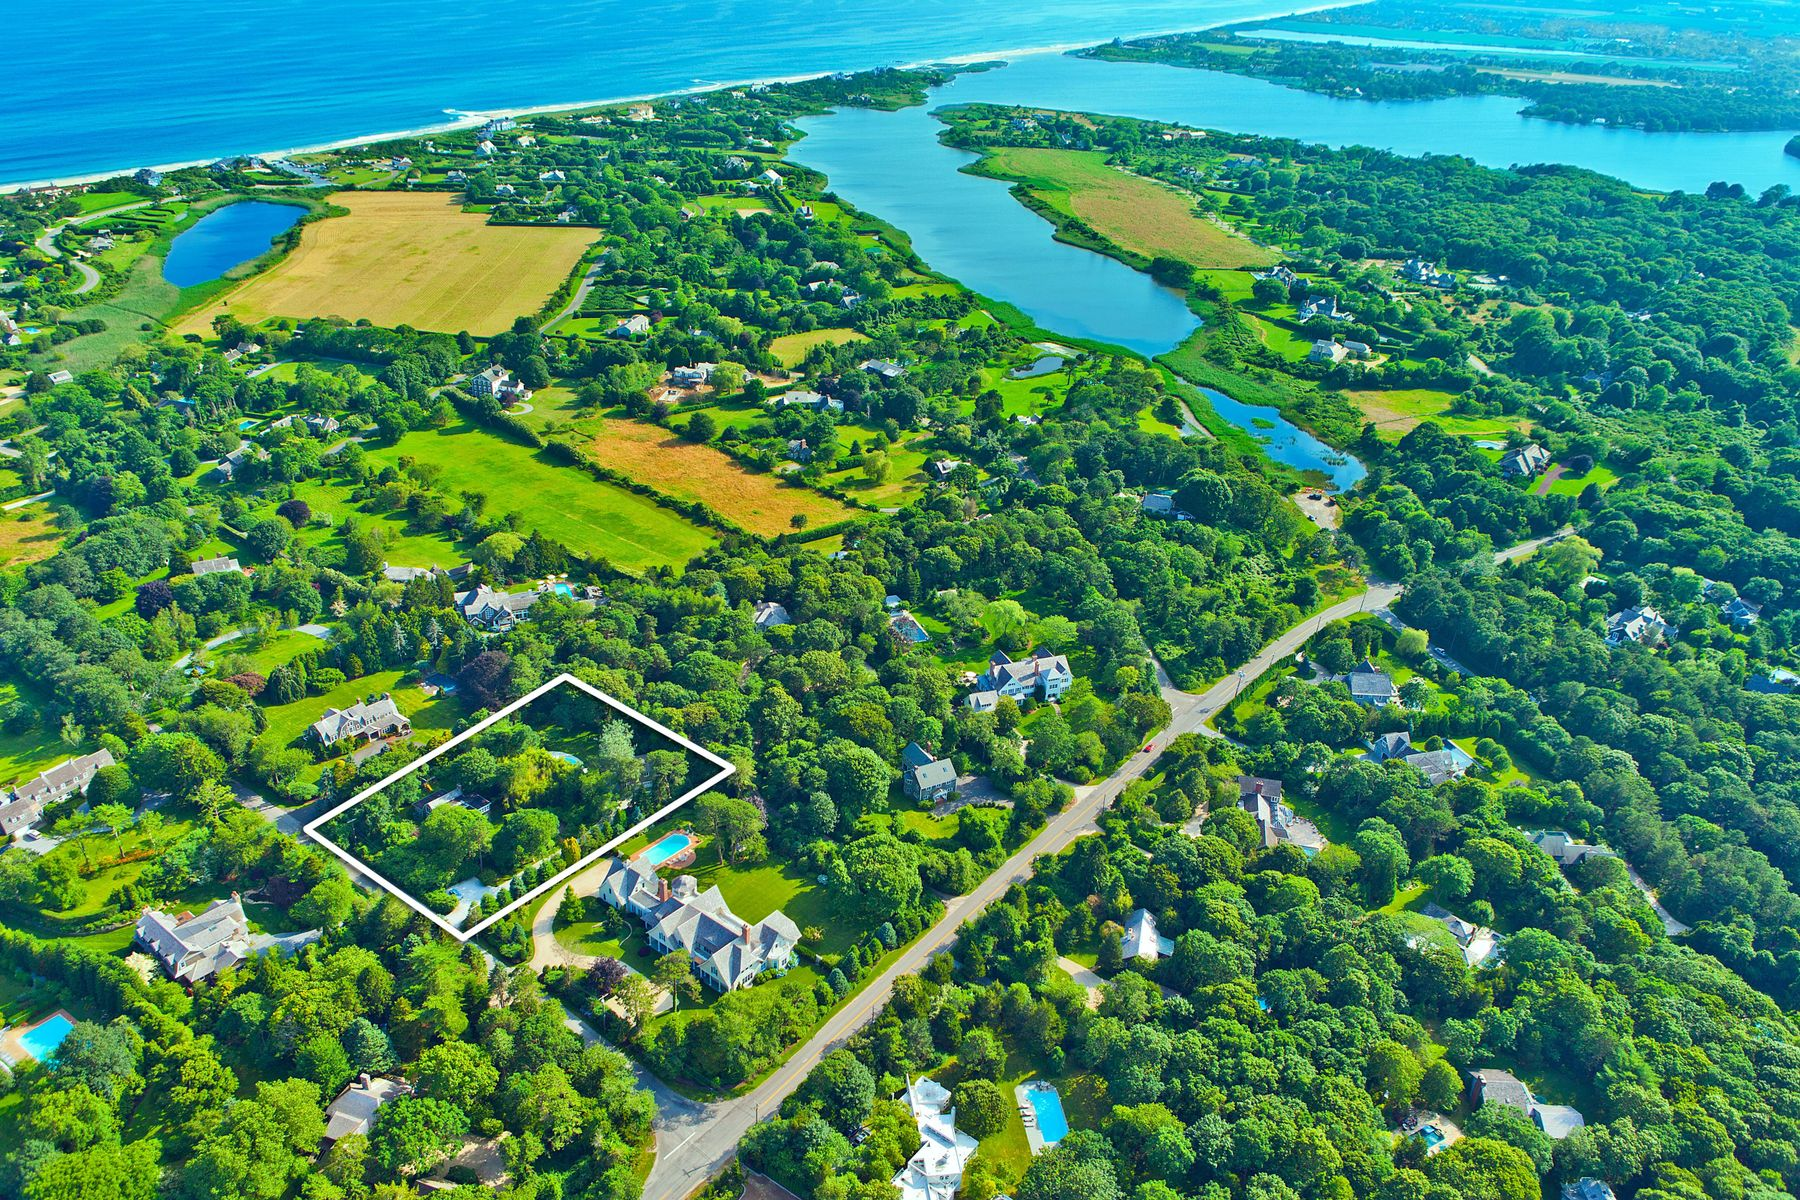 Single Family Home for Active at Georgica Beach At Your Door Step 10 Jericho Lane East Hampton, New York 11937 United States